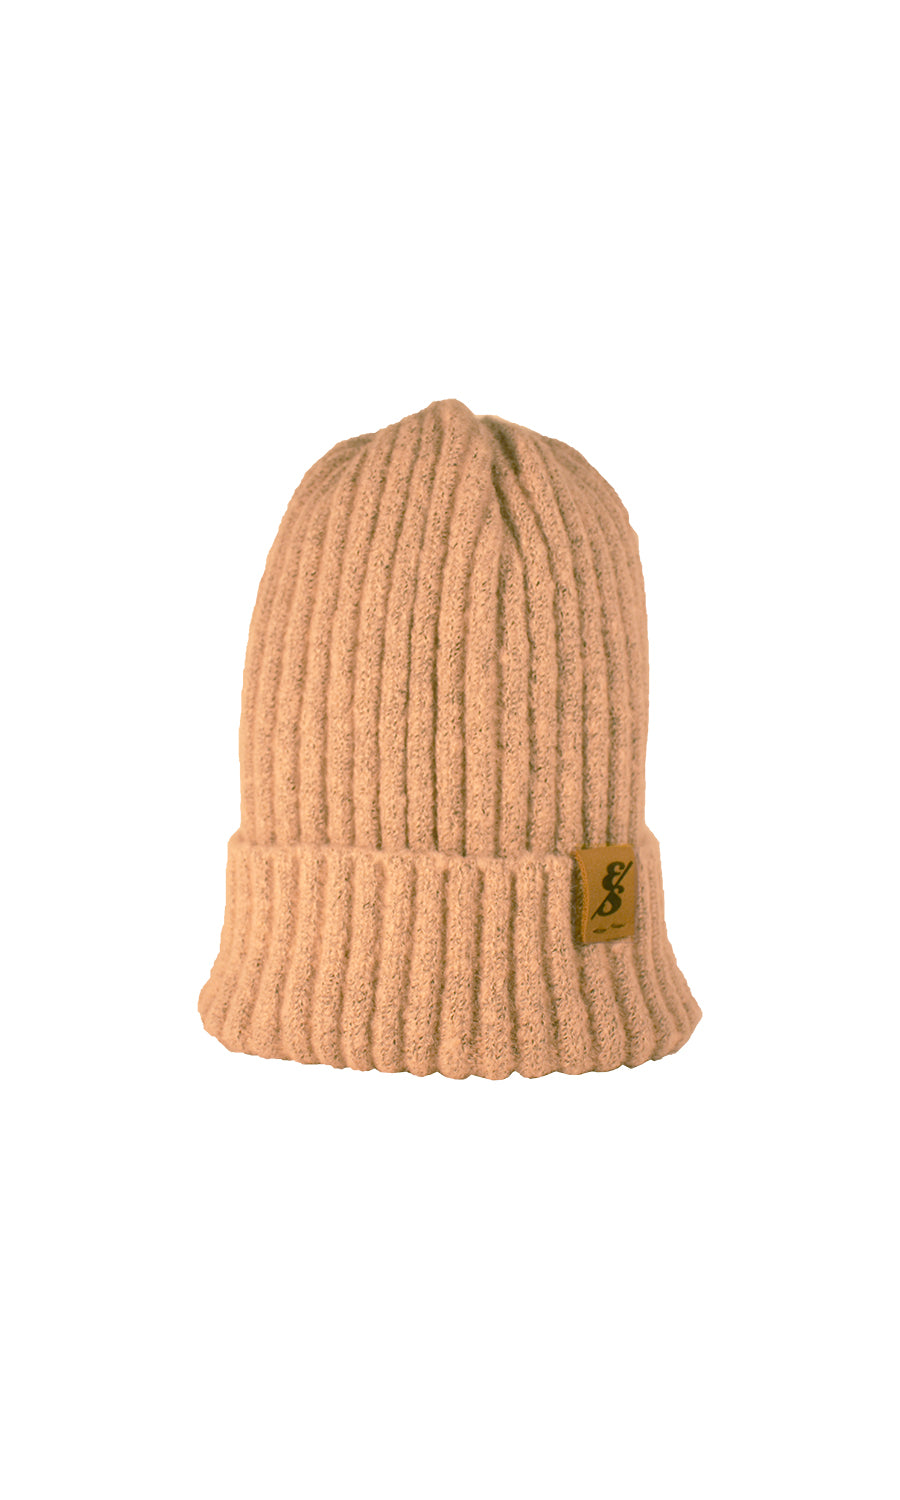 No. 362 The Classic Beanie In Champagne Pink